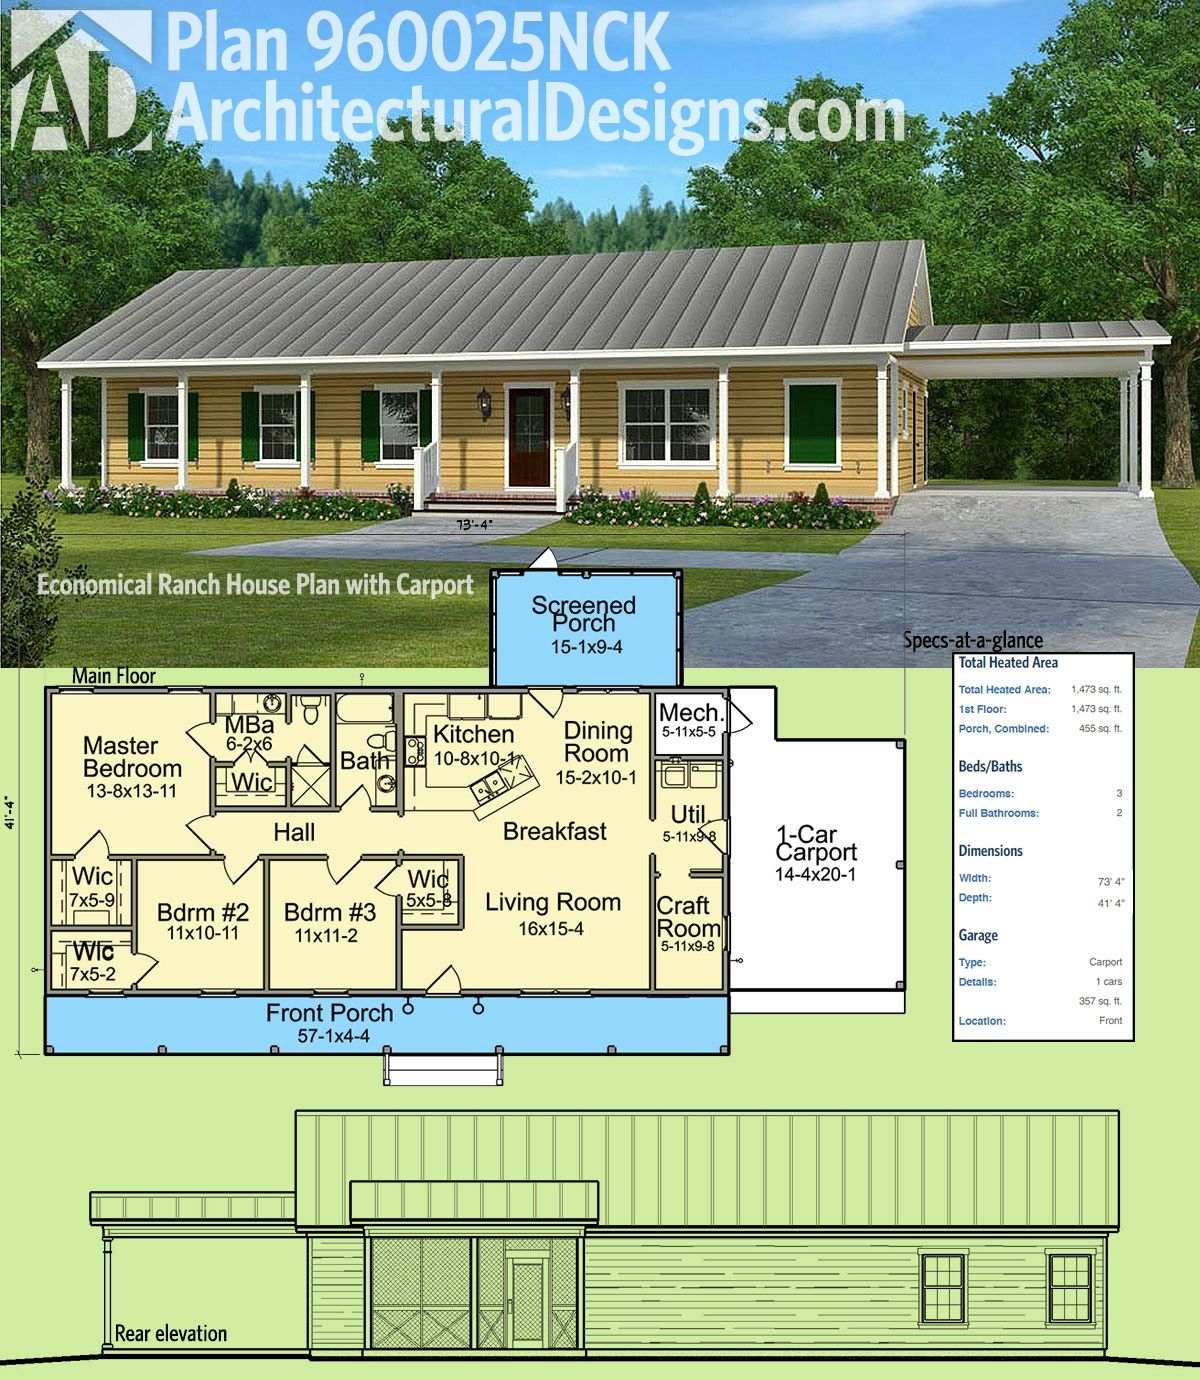 Plan 960025nck economical ranch house plan with carport for Economical ranch house plans